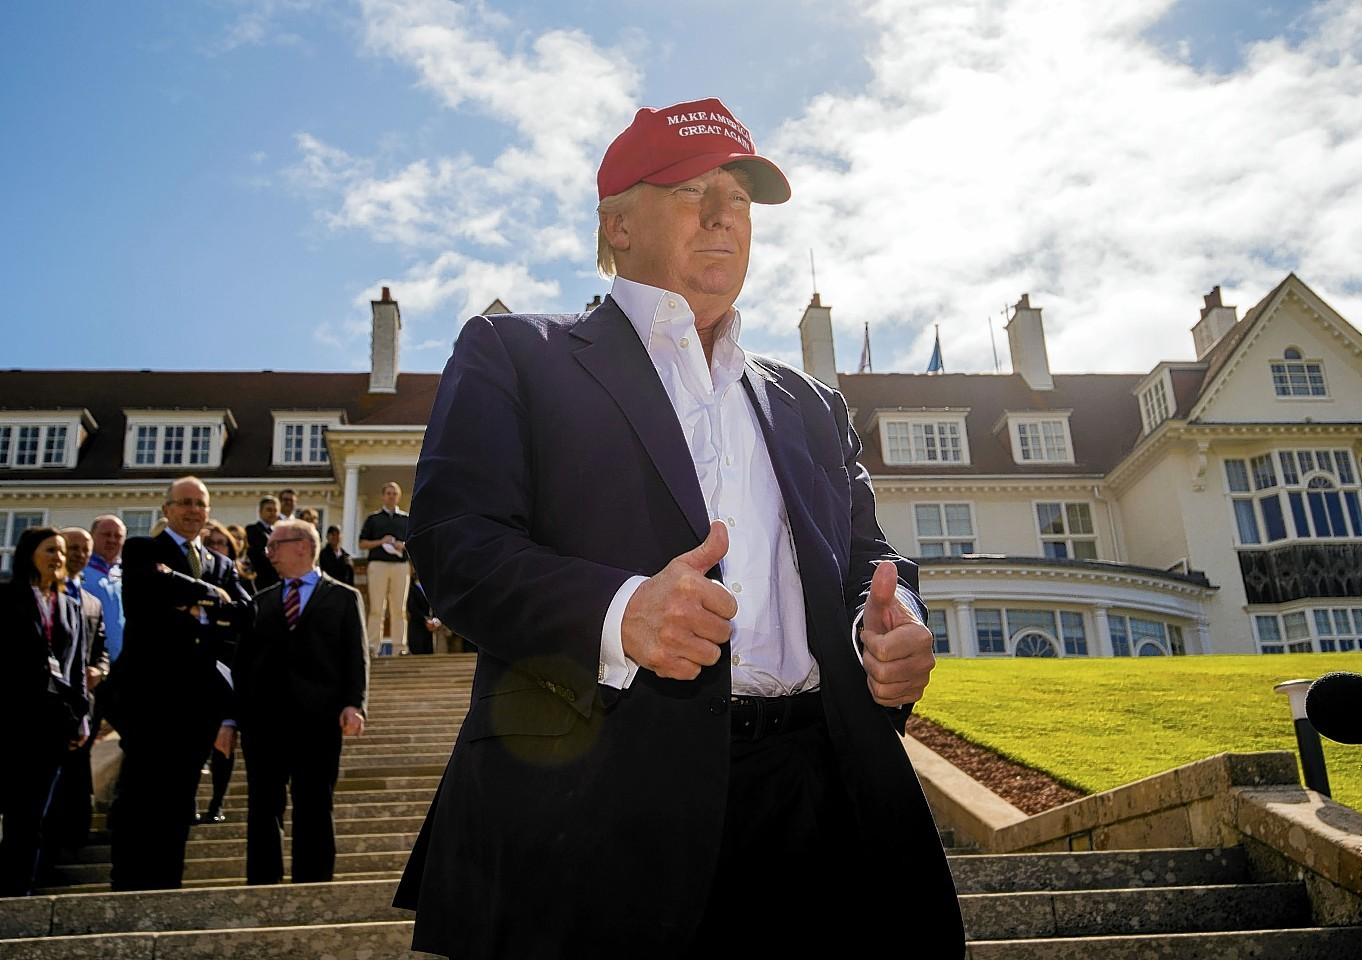 Donald Trump at Turnberry